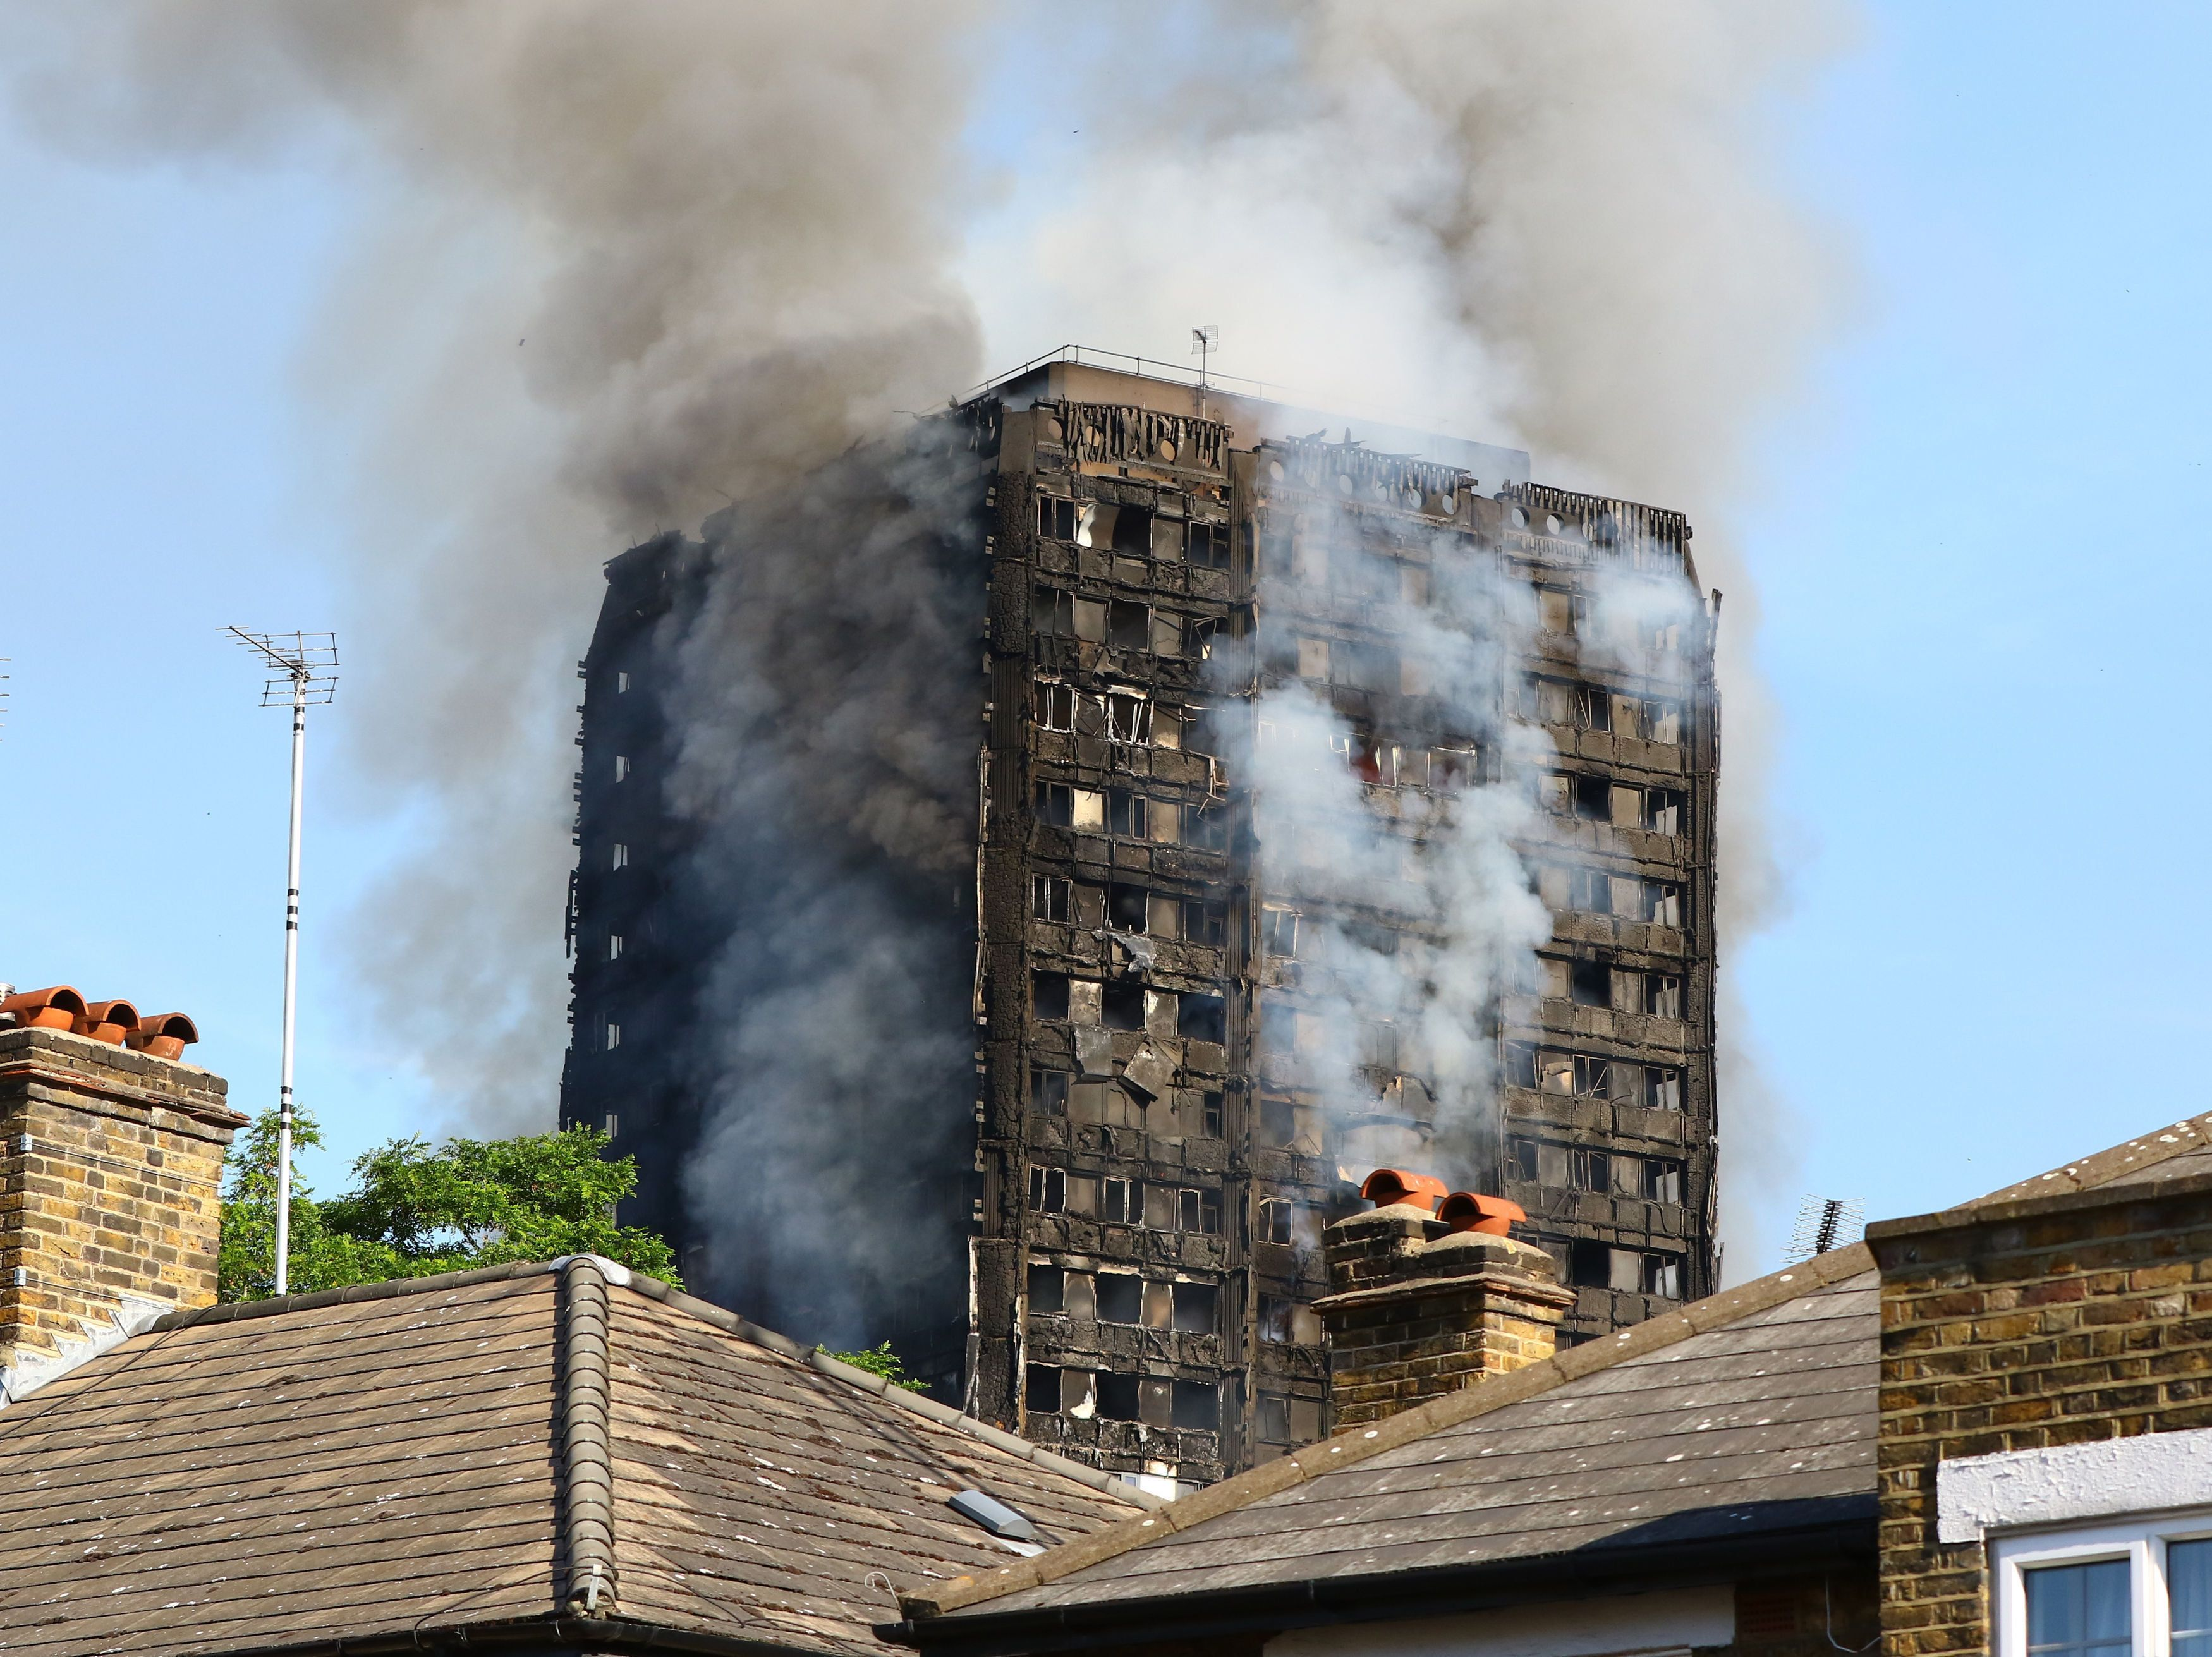 The Fridge At The Centre Of Grenfell Tower Blaze Does Not Need To Be